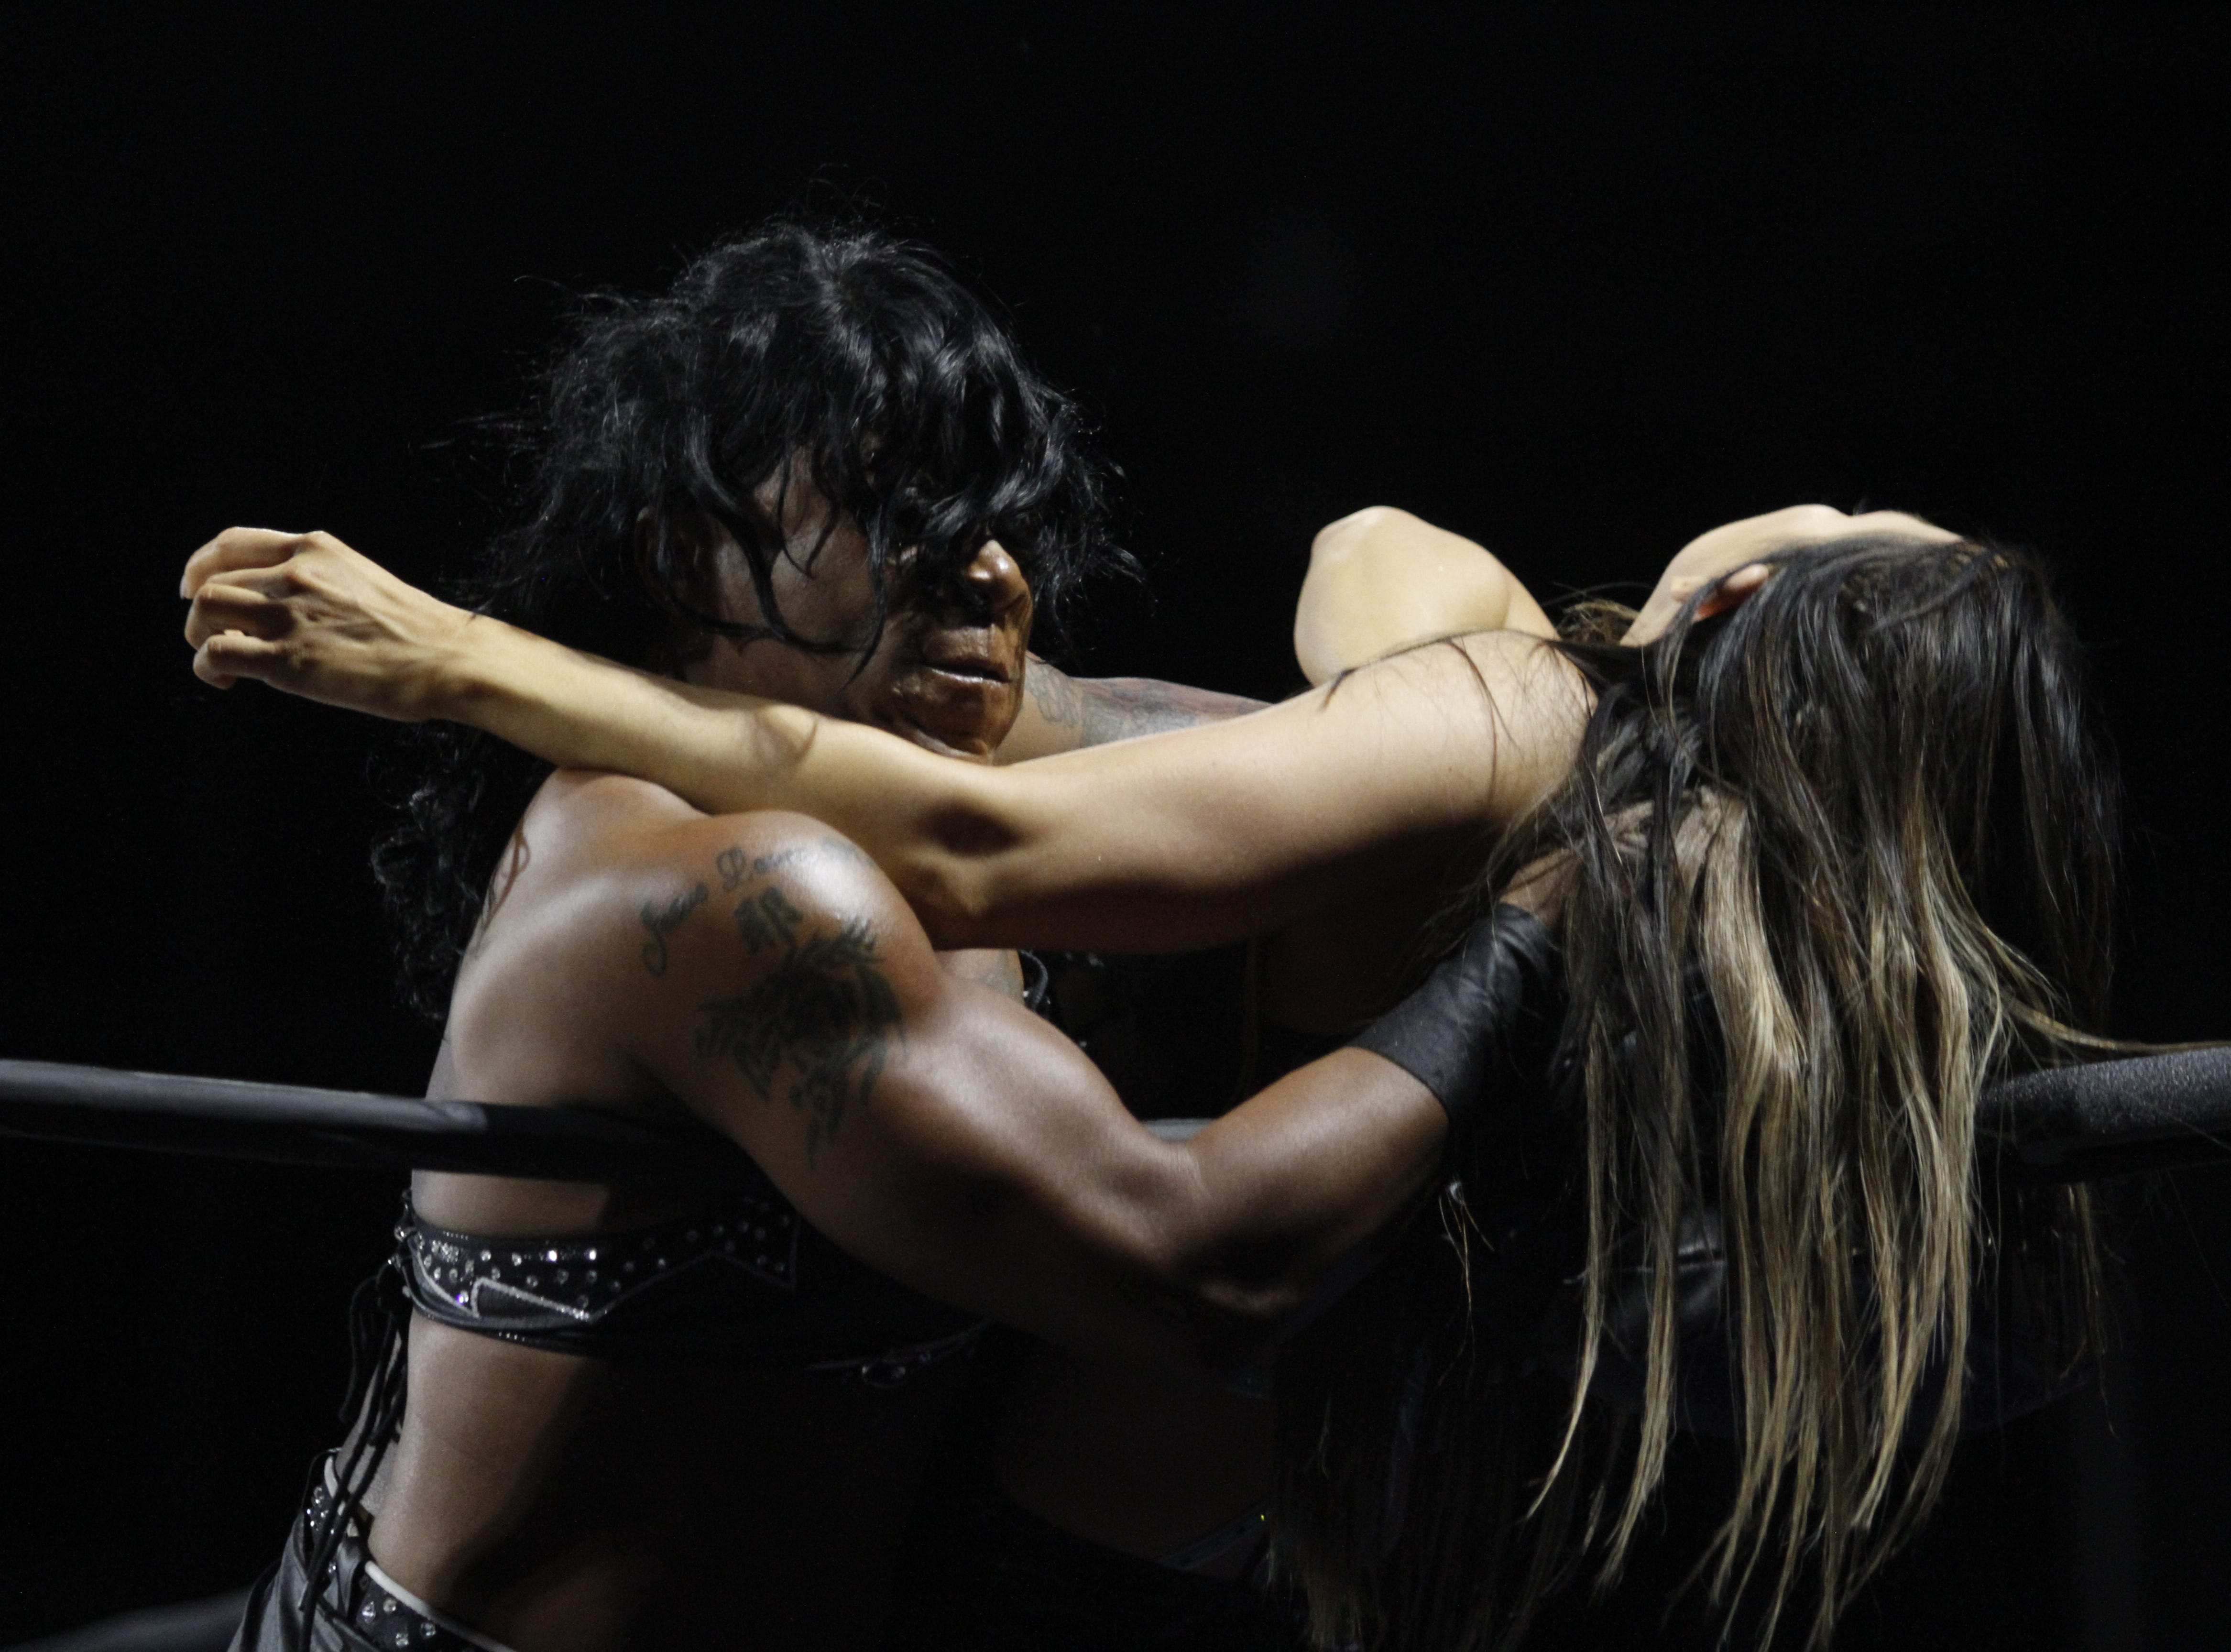 NWA Women's Champion Jazz defends her title against Allie during the National Wrestling Alliance Pop-Up Event at the Wilma Rudolph Event Center Saturday, Jan. 5, 2019, in Clarksville, Tenn.